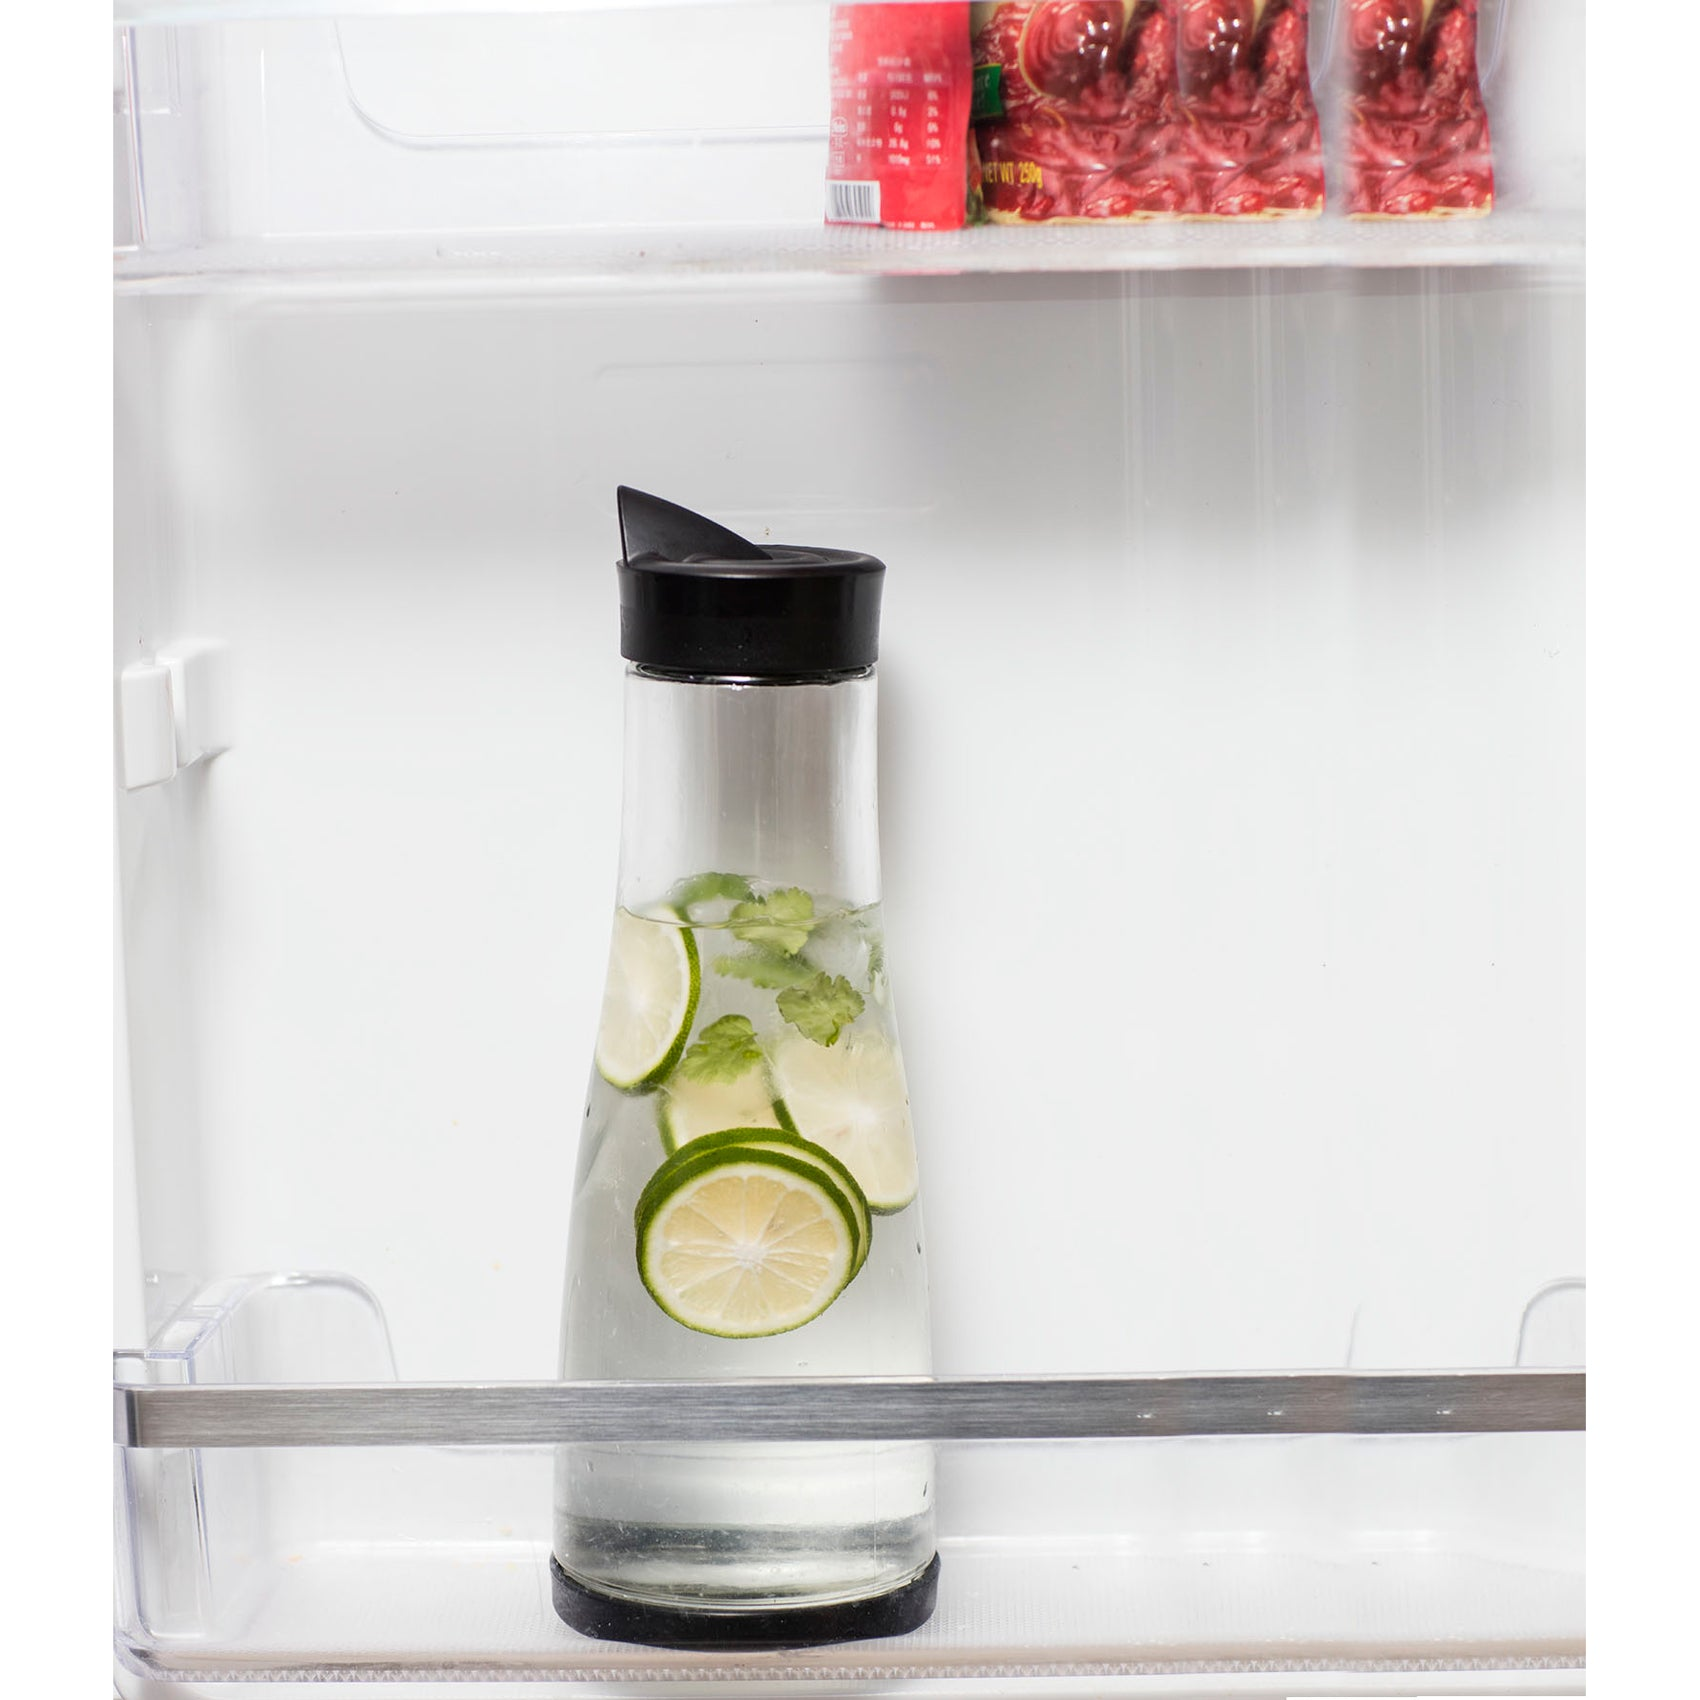 Chefoh Glass Water Carafe With Lid And Protective Base - EZ Pour Drip Spout 1 Liter/ 33.8 Oz - Fridge Water Pitcher Bottle Dispenser - Great For Juice - Lemonade - Iced Tea - Milk - Wine